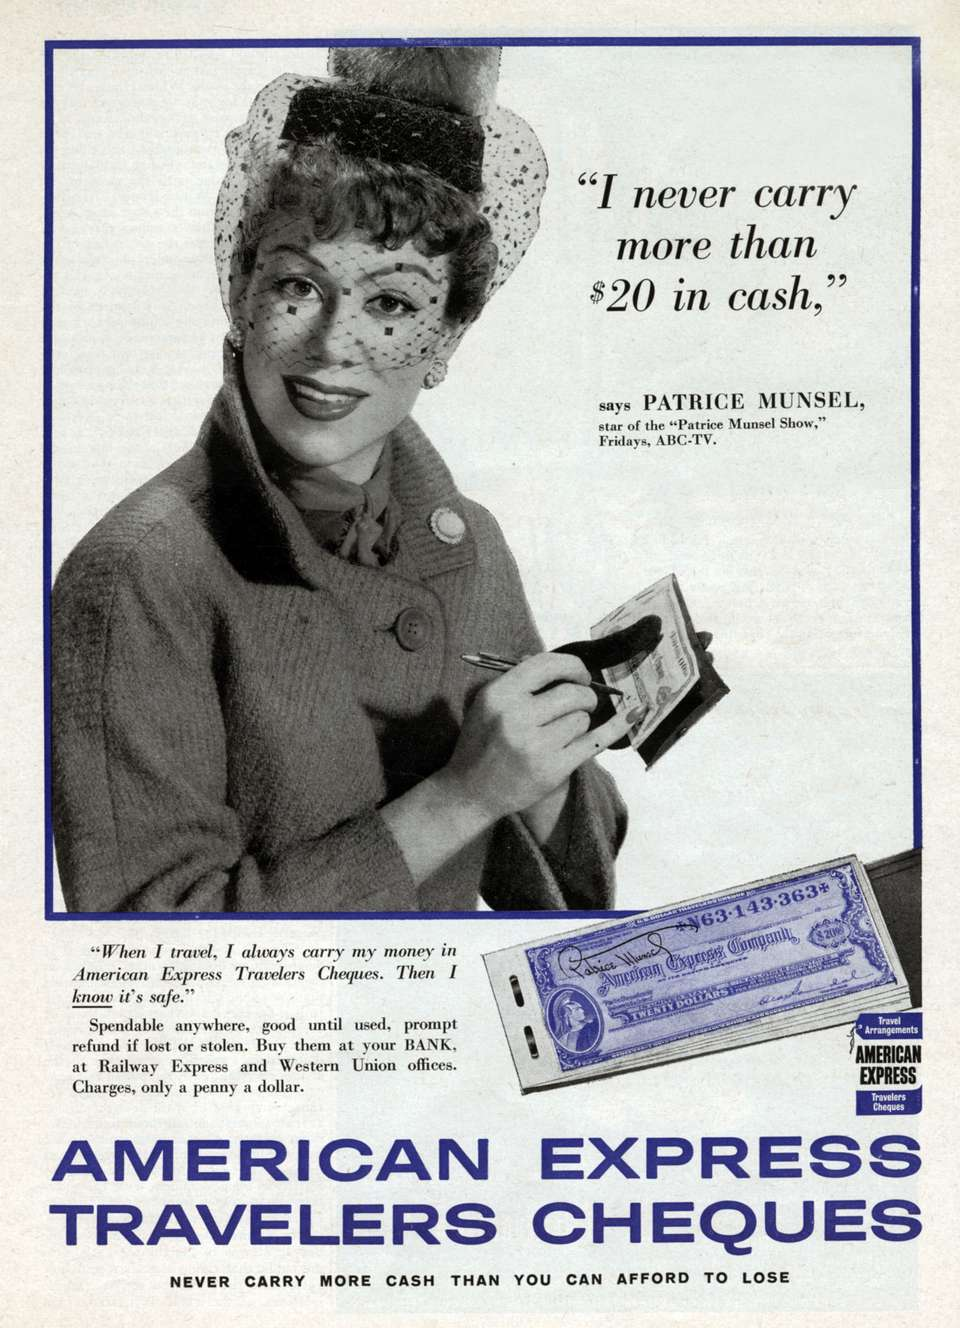 American advertisement for American Express Travelers cheques 1958